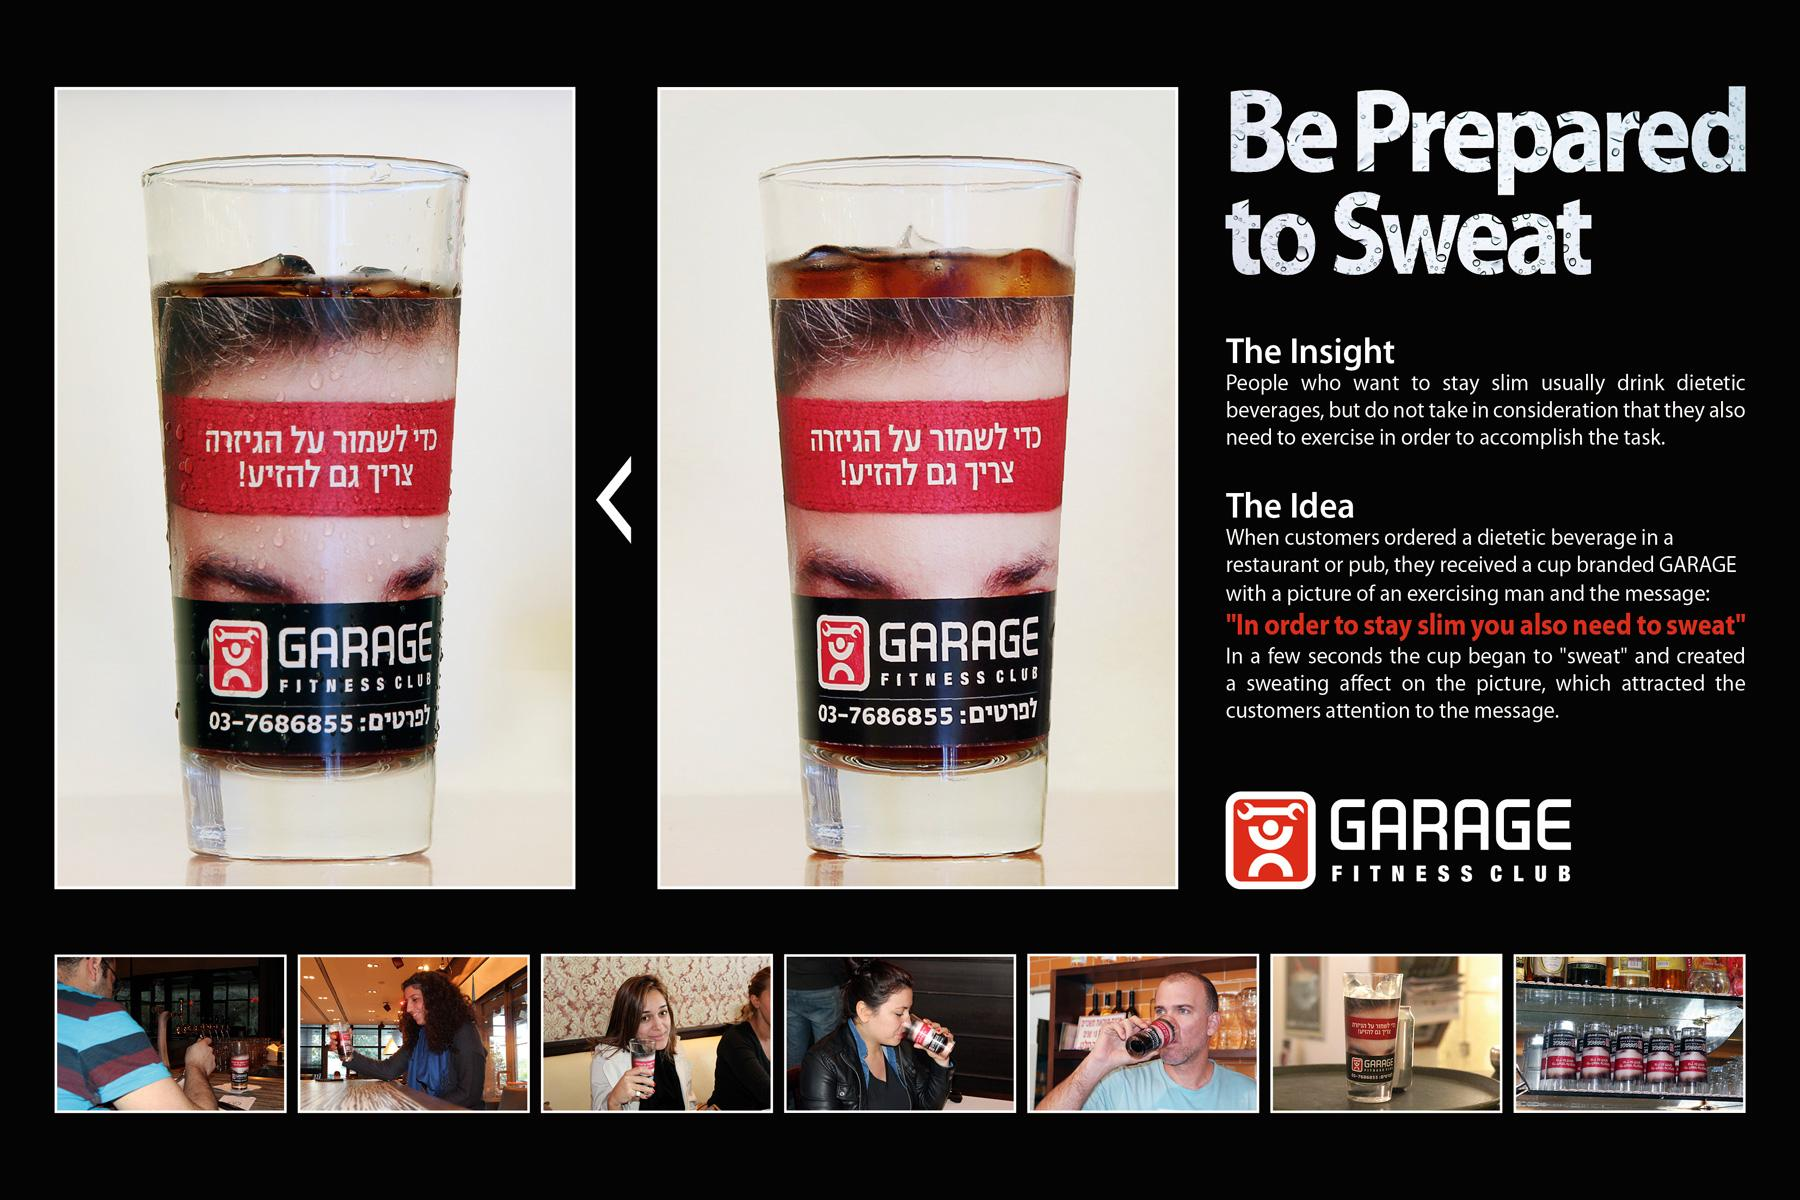 Garage Fitness Club Direct Ad -  Be prepared to sweat